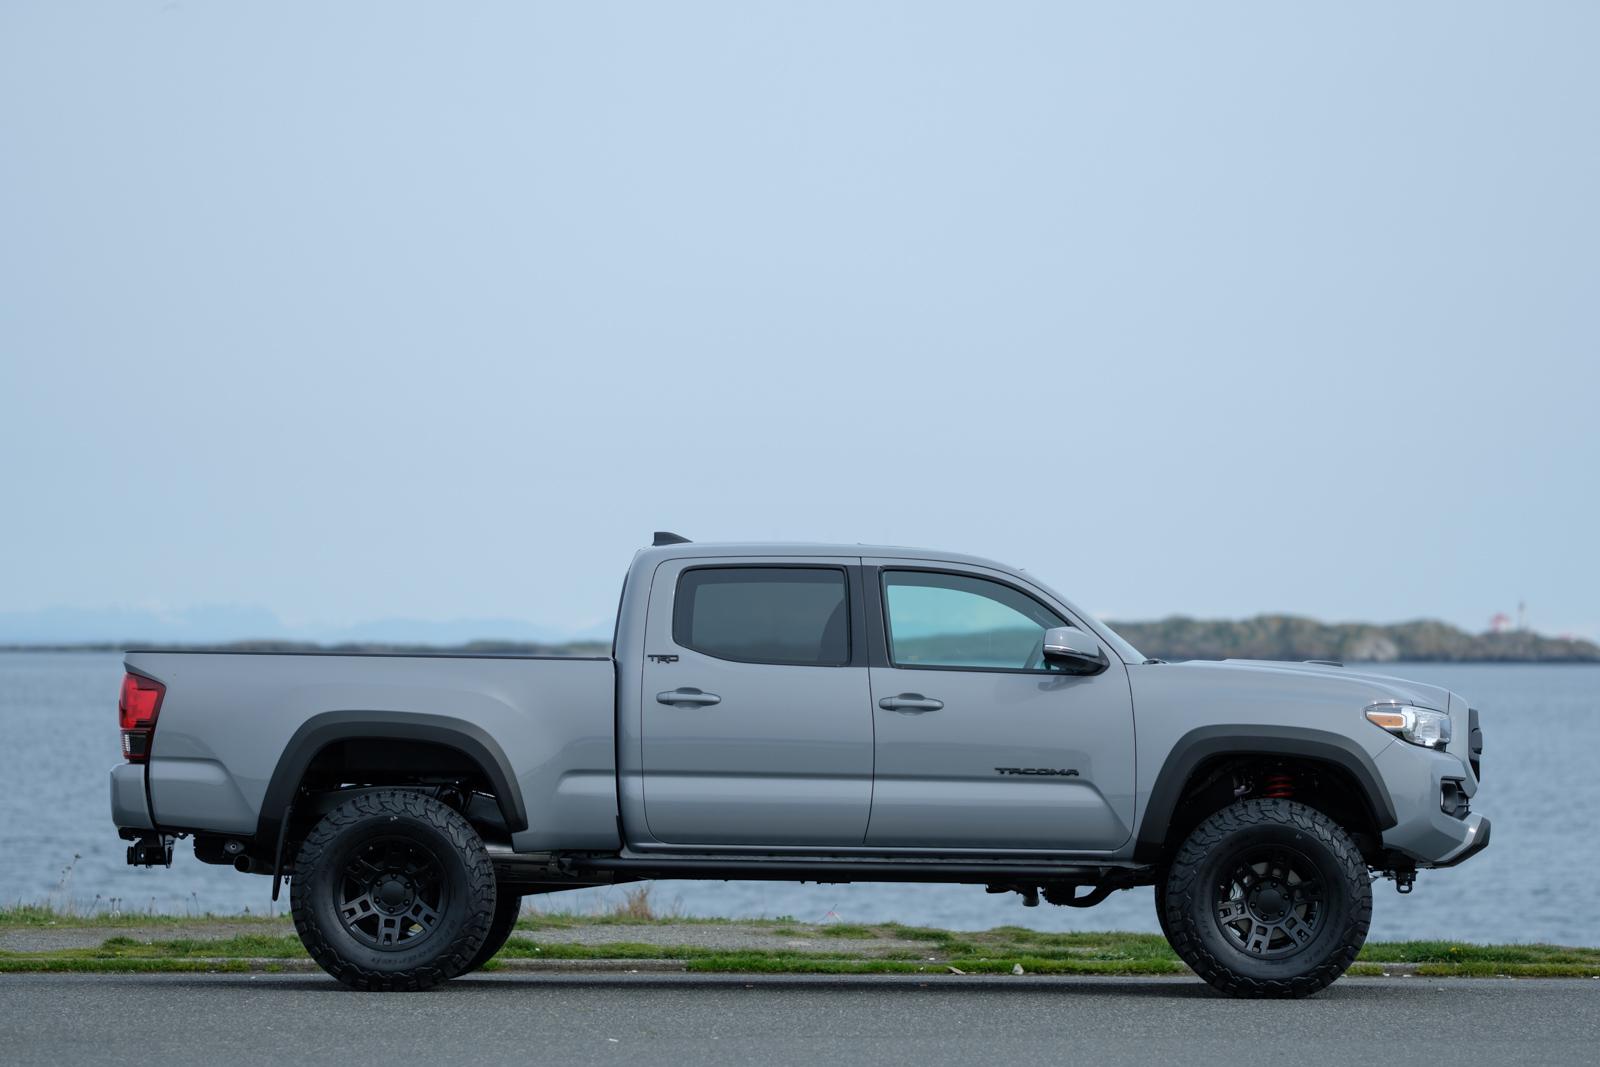 2018 Toyota Tacoma TRD Custom - Silver Arrow Cars Ltd.